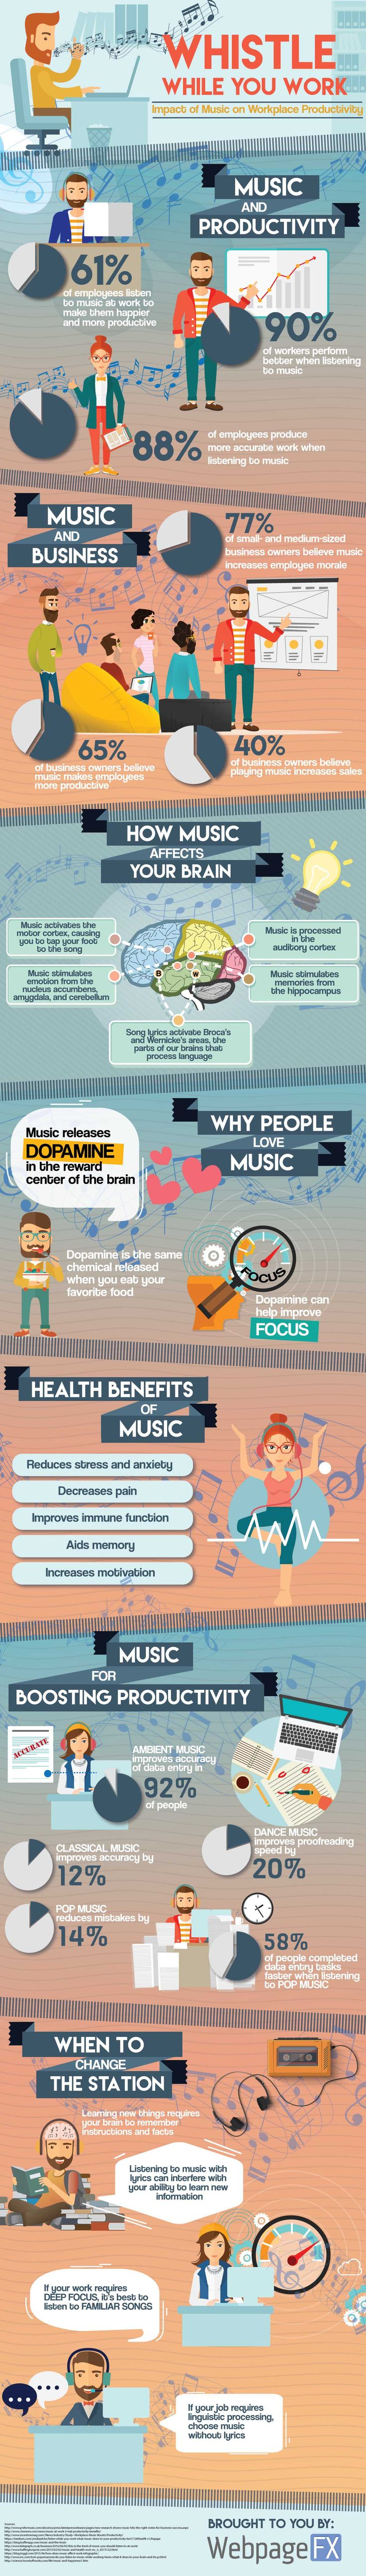 Whistle While You Work: Impact of Music on Productivity